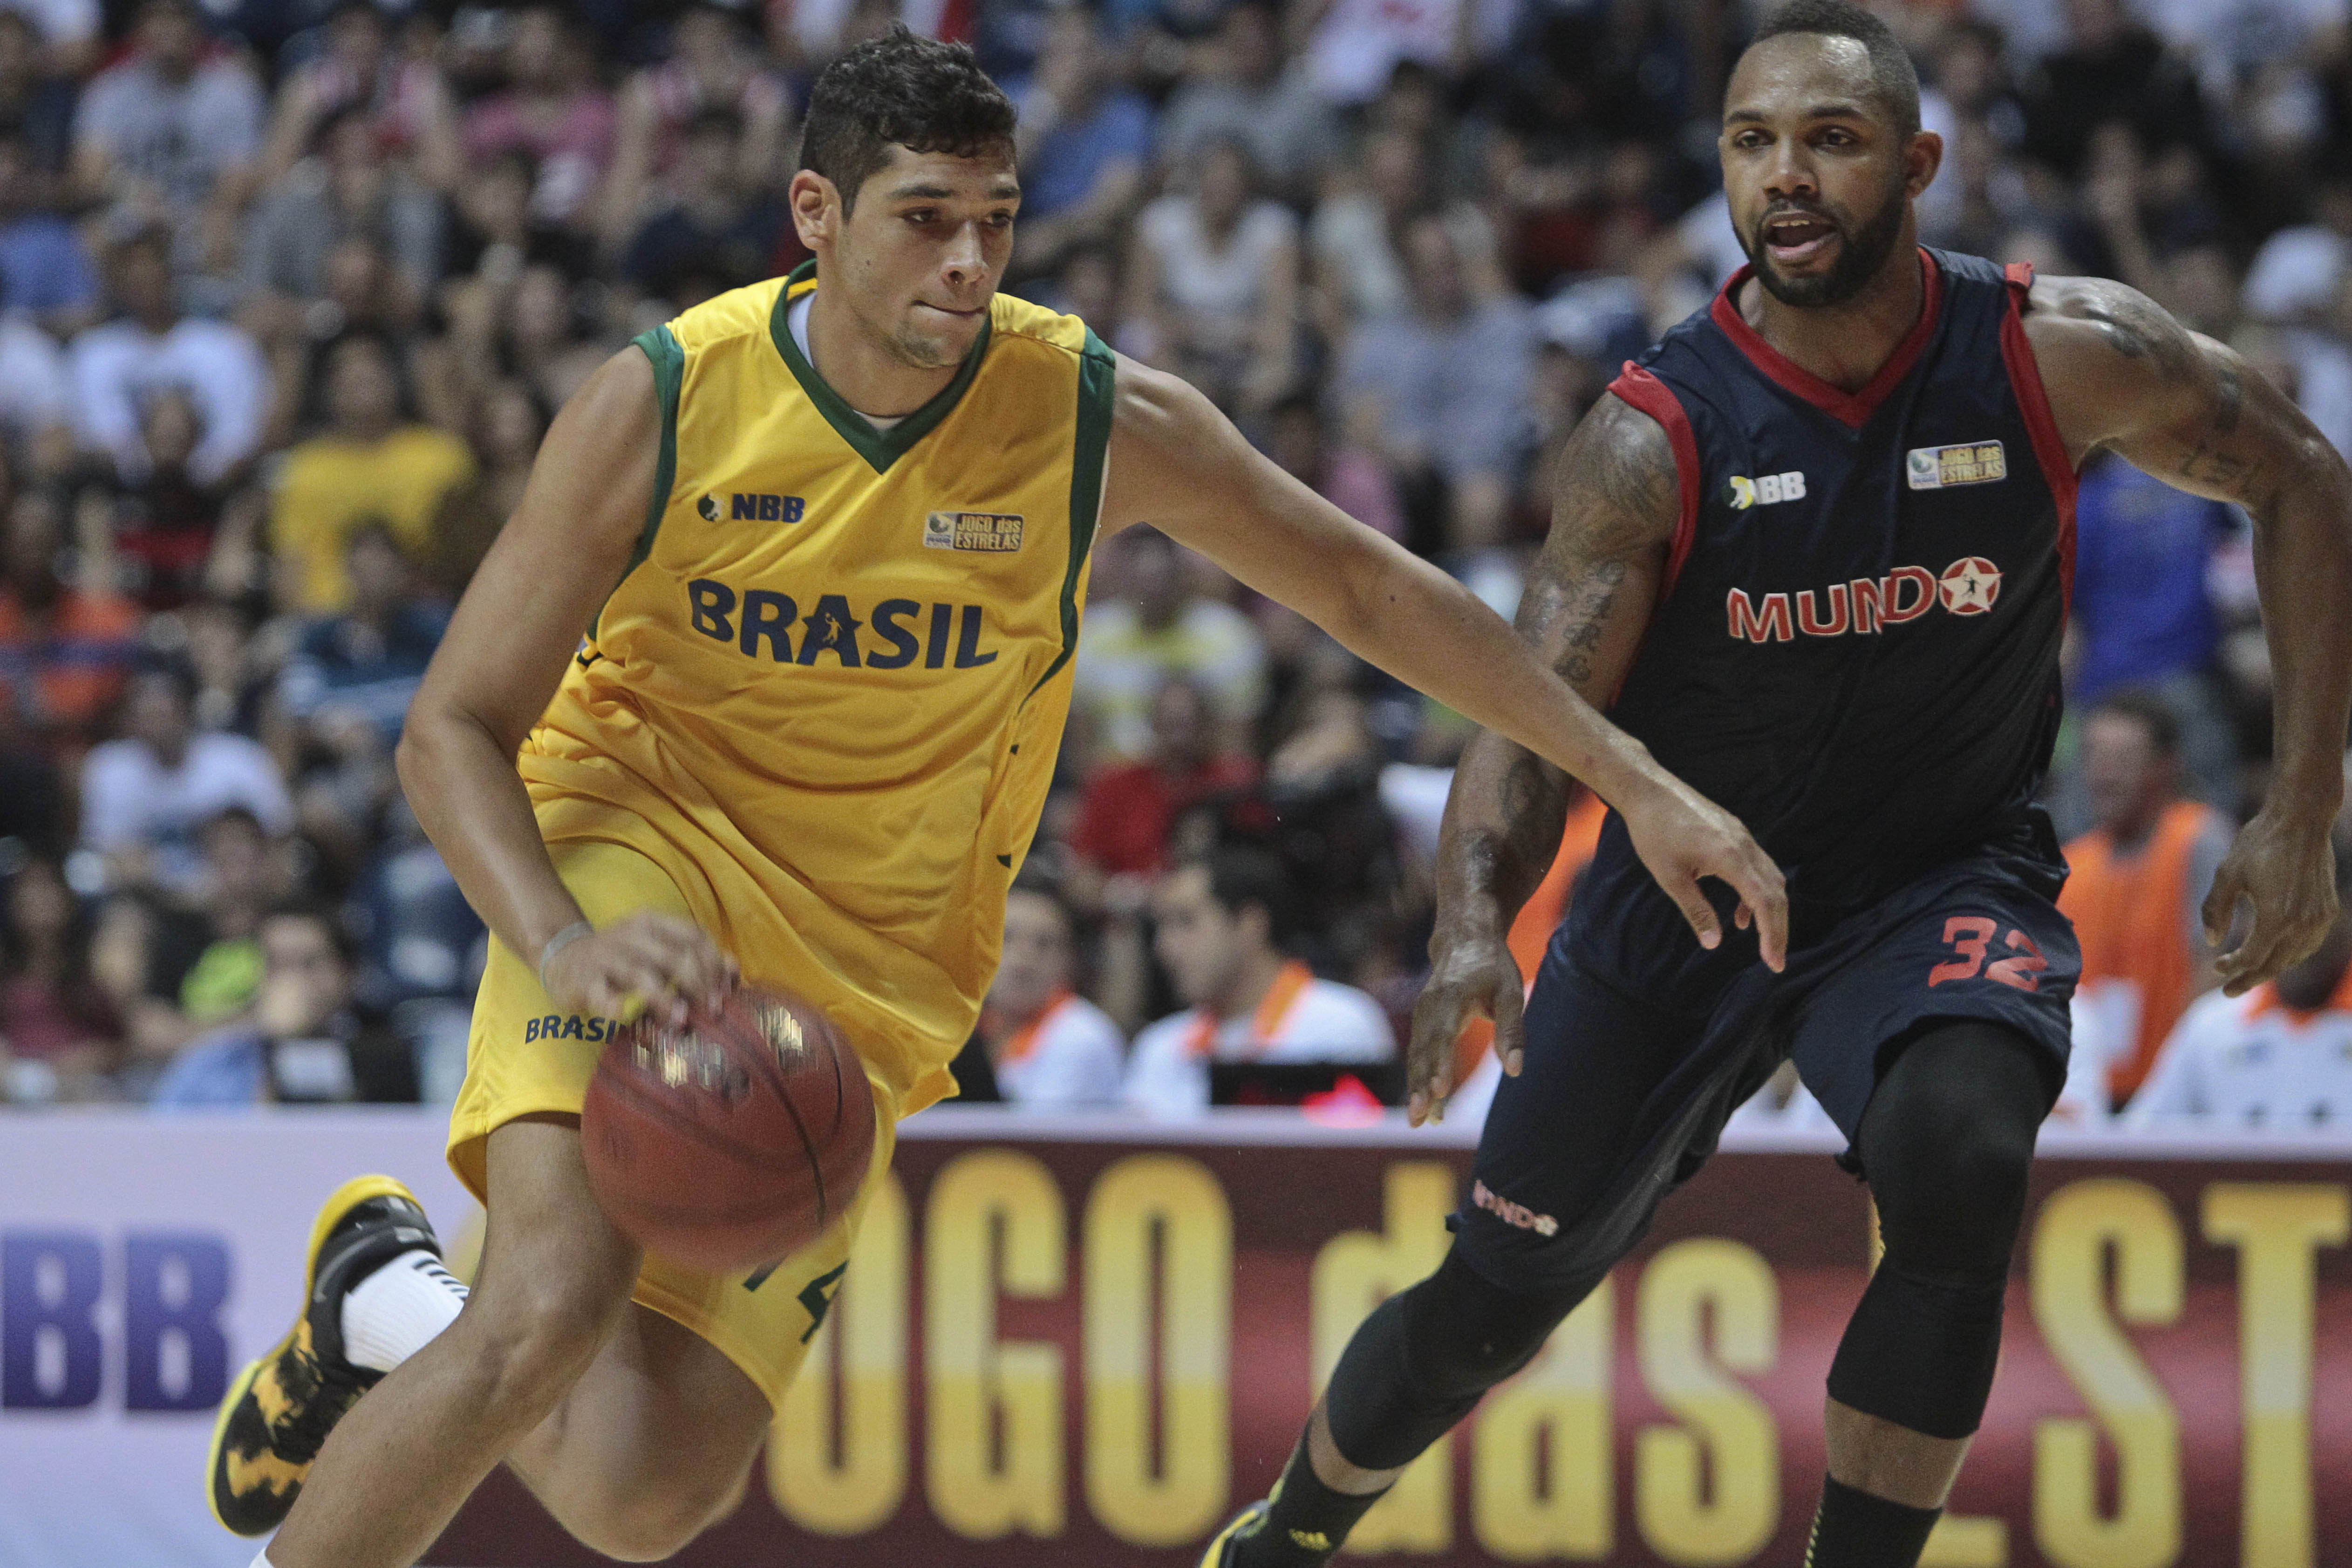 Léo Meindl, do NBB Brasil, e David Jackson, do NBB Mundo